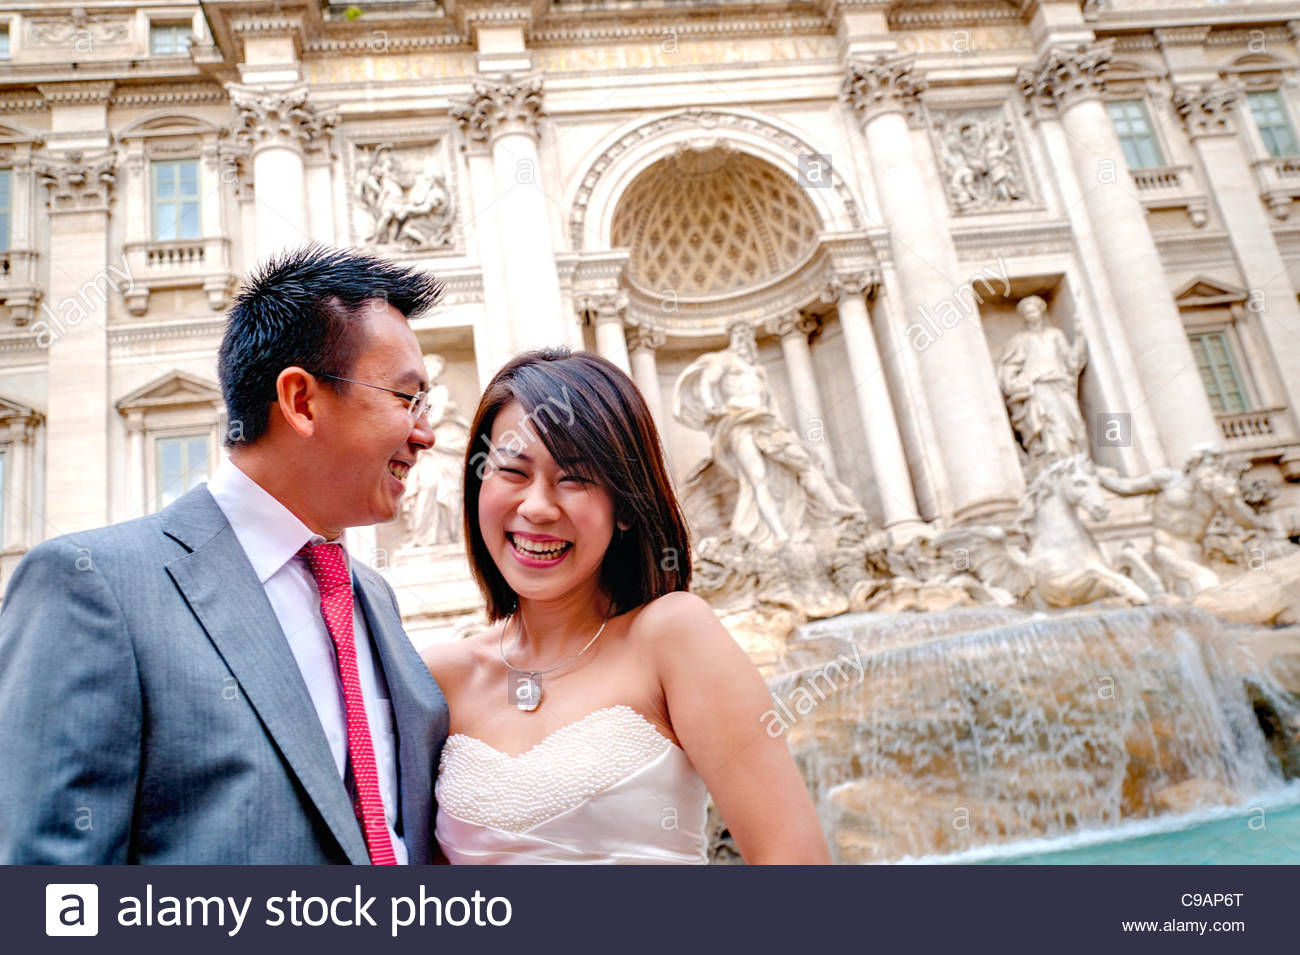 Newlyweds laughing in front of Fontana di Trevi - Stock Image